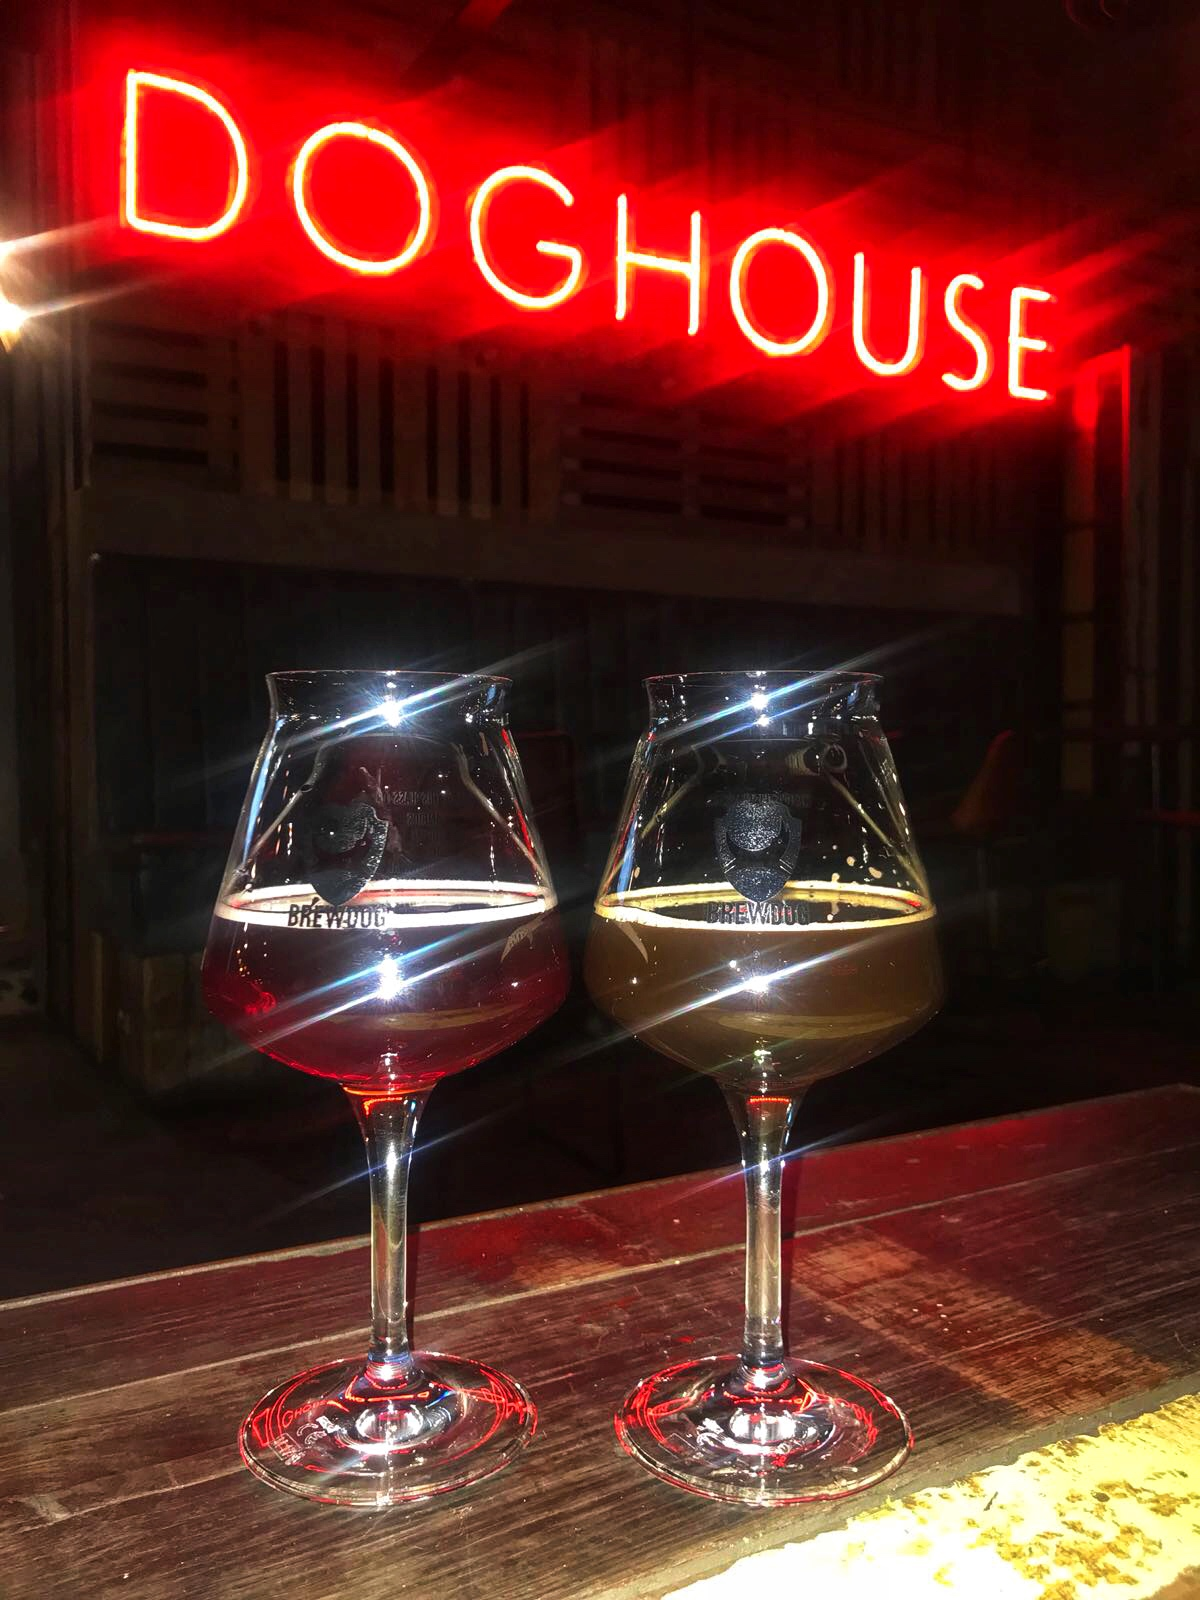 Doghouse BrewDog Glasgow